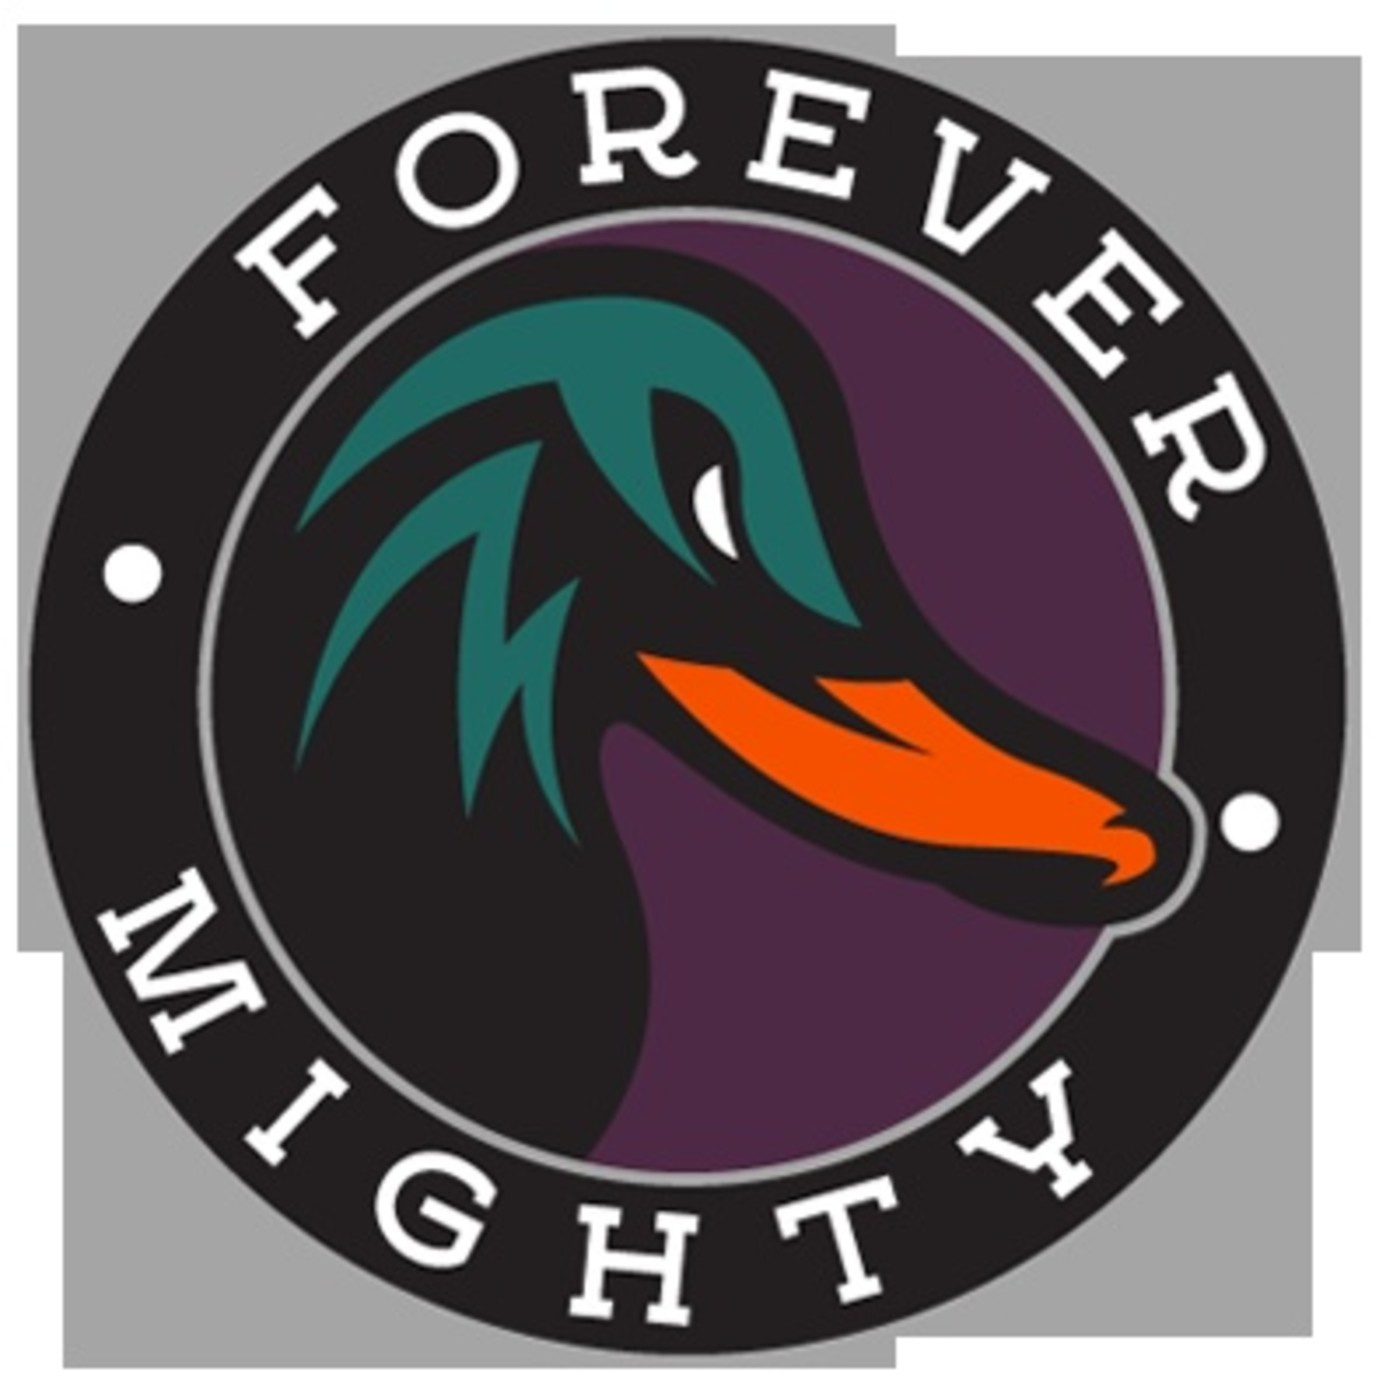 Forever Mighty Podcast - Gong Show - Dec. 8, 2019